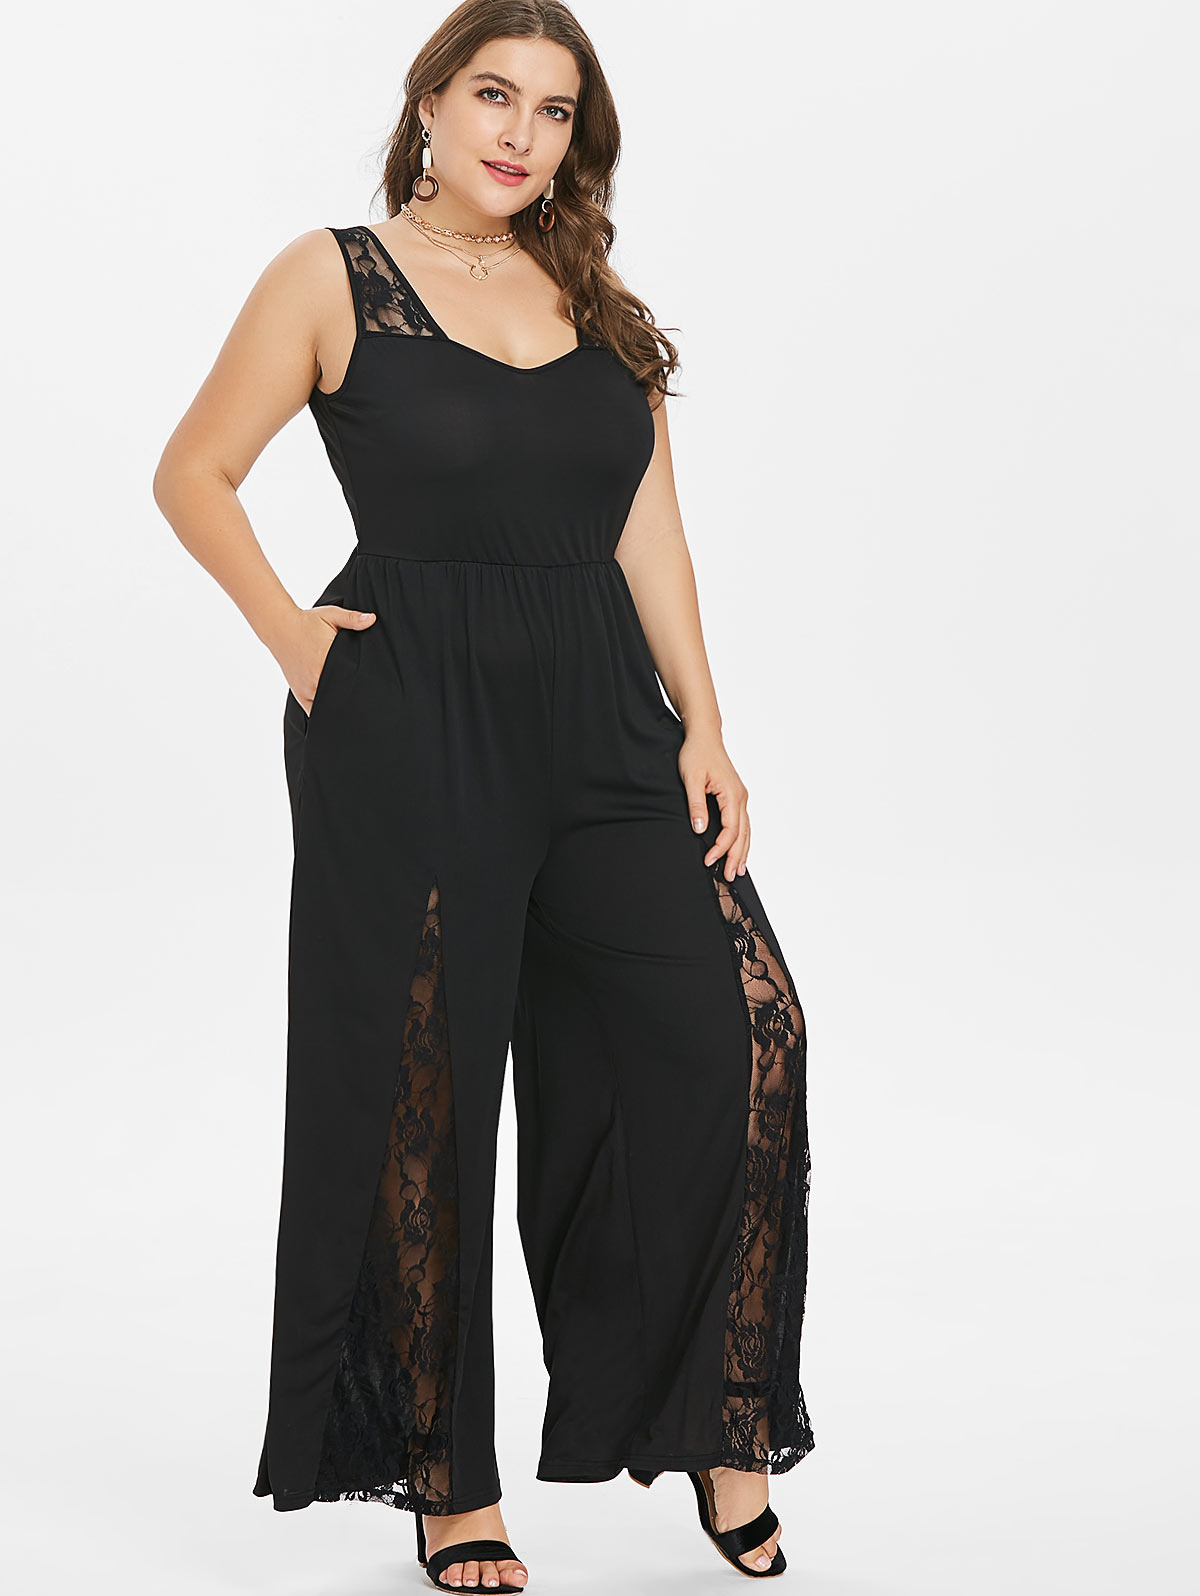 Wipalo Women Plus Size 5XL Lace Panel Wide Leg Jumpsuit Casual Solid Plunging Neck Sleeveless Floor Length Jumpsuit Big Size Set(China)